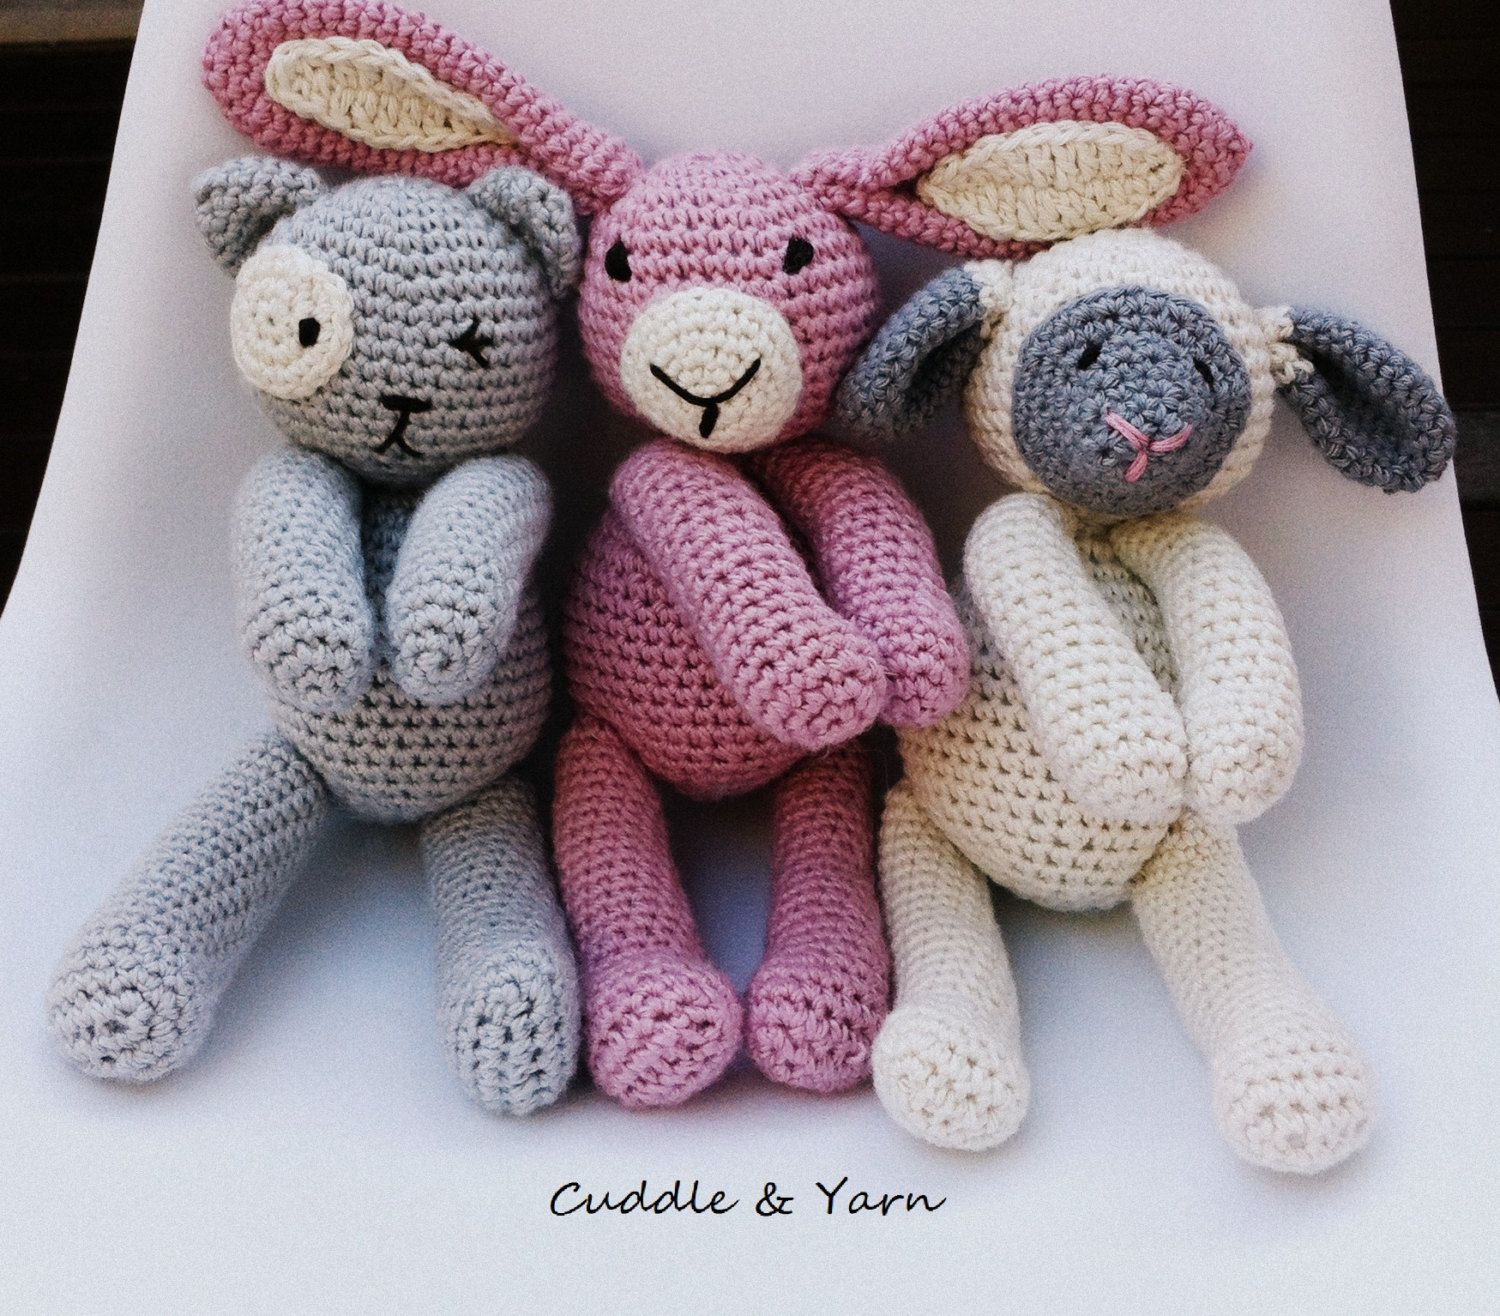 Special offer crochet animals 2 crochet soft toys of your choice crochet animals 2 crochet soft toys of your choice in my shop easter gift easter photoshoot gift newborn soft toys newborn photo prop aud by cuddleandyarn negle Gallery